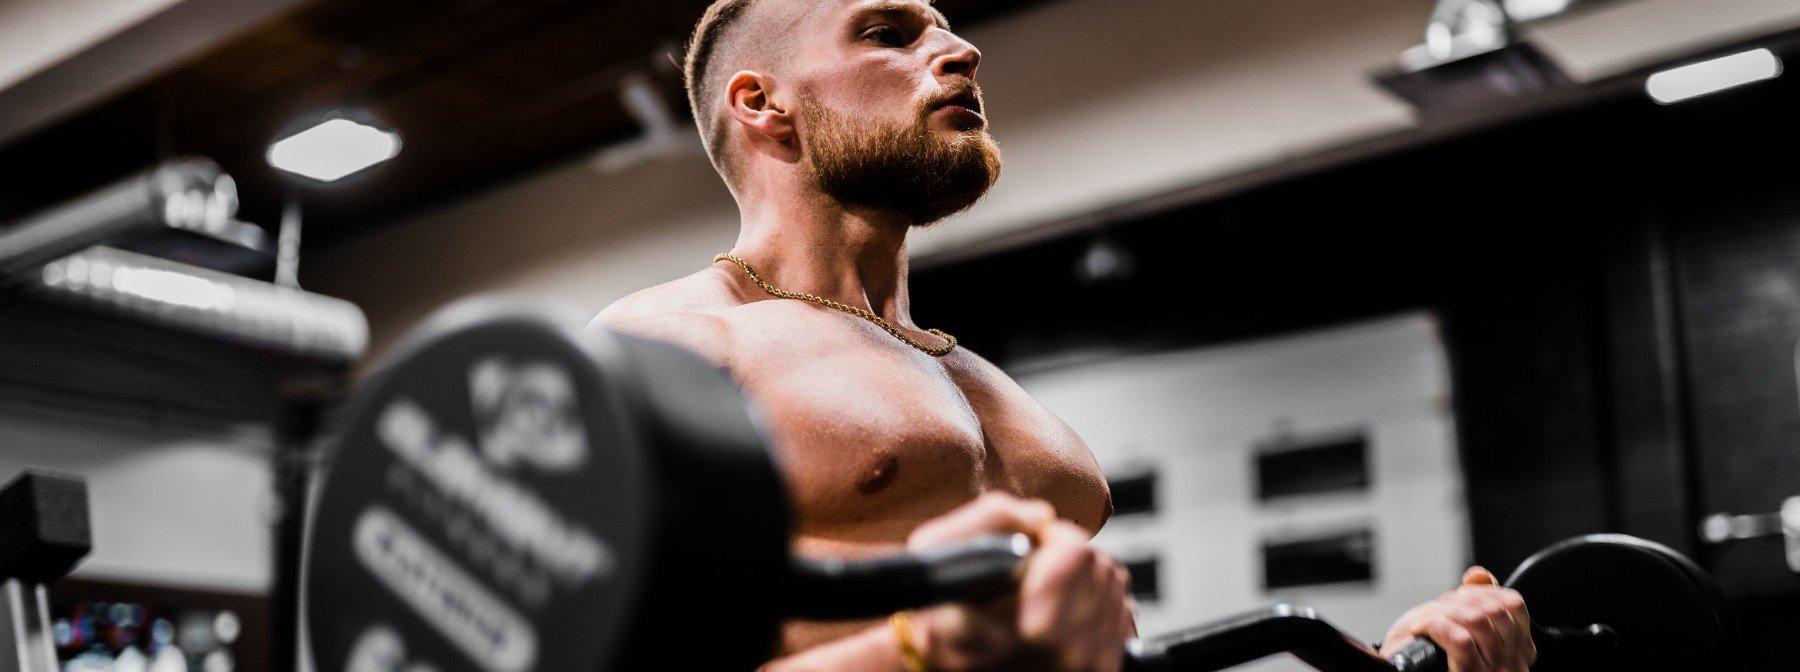 5 Practical Tips For Gym Anxiety